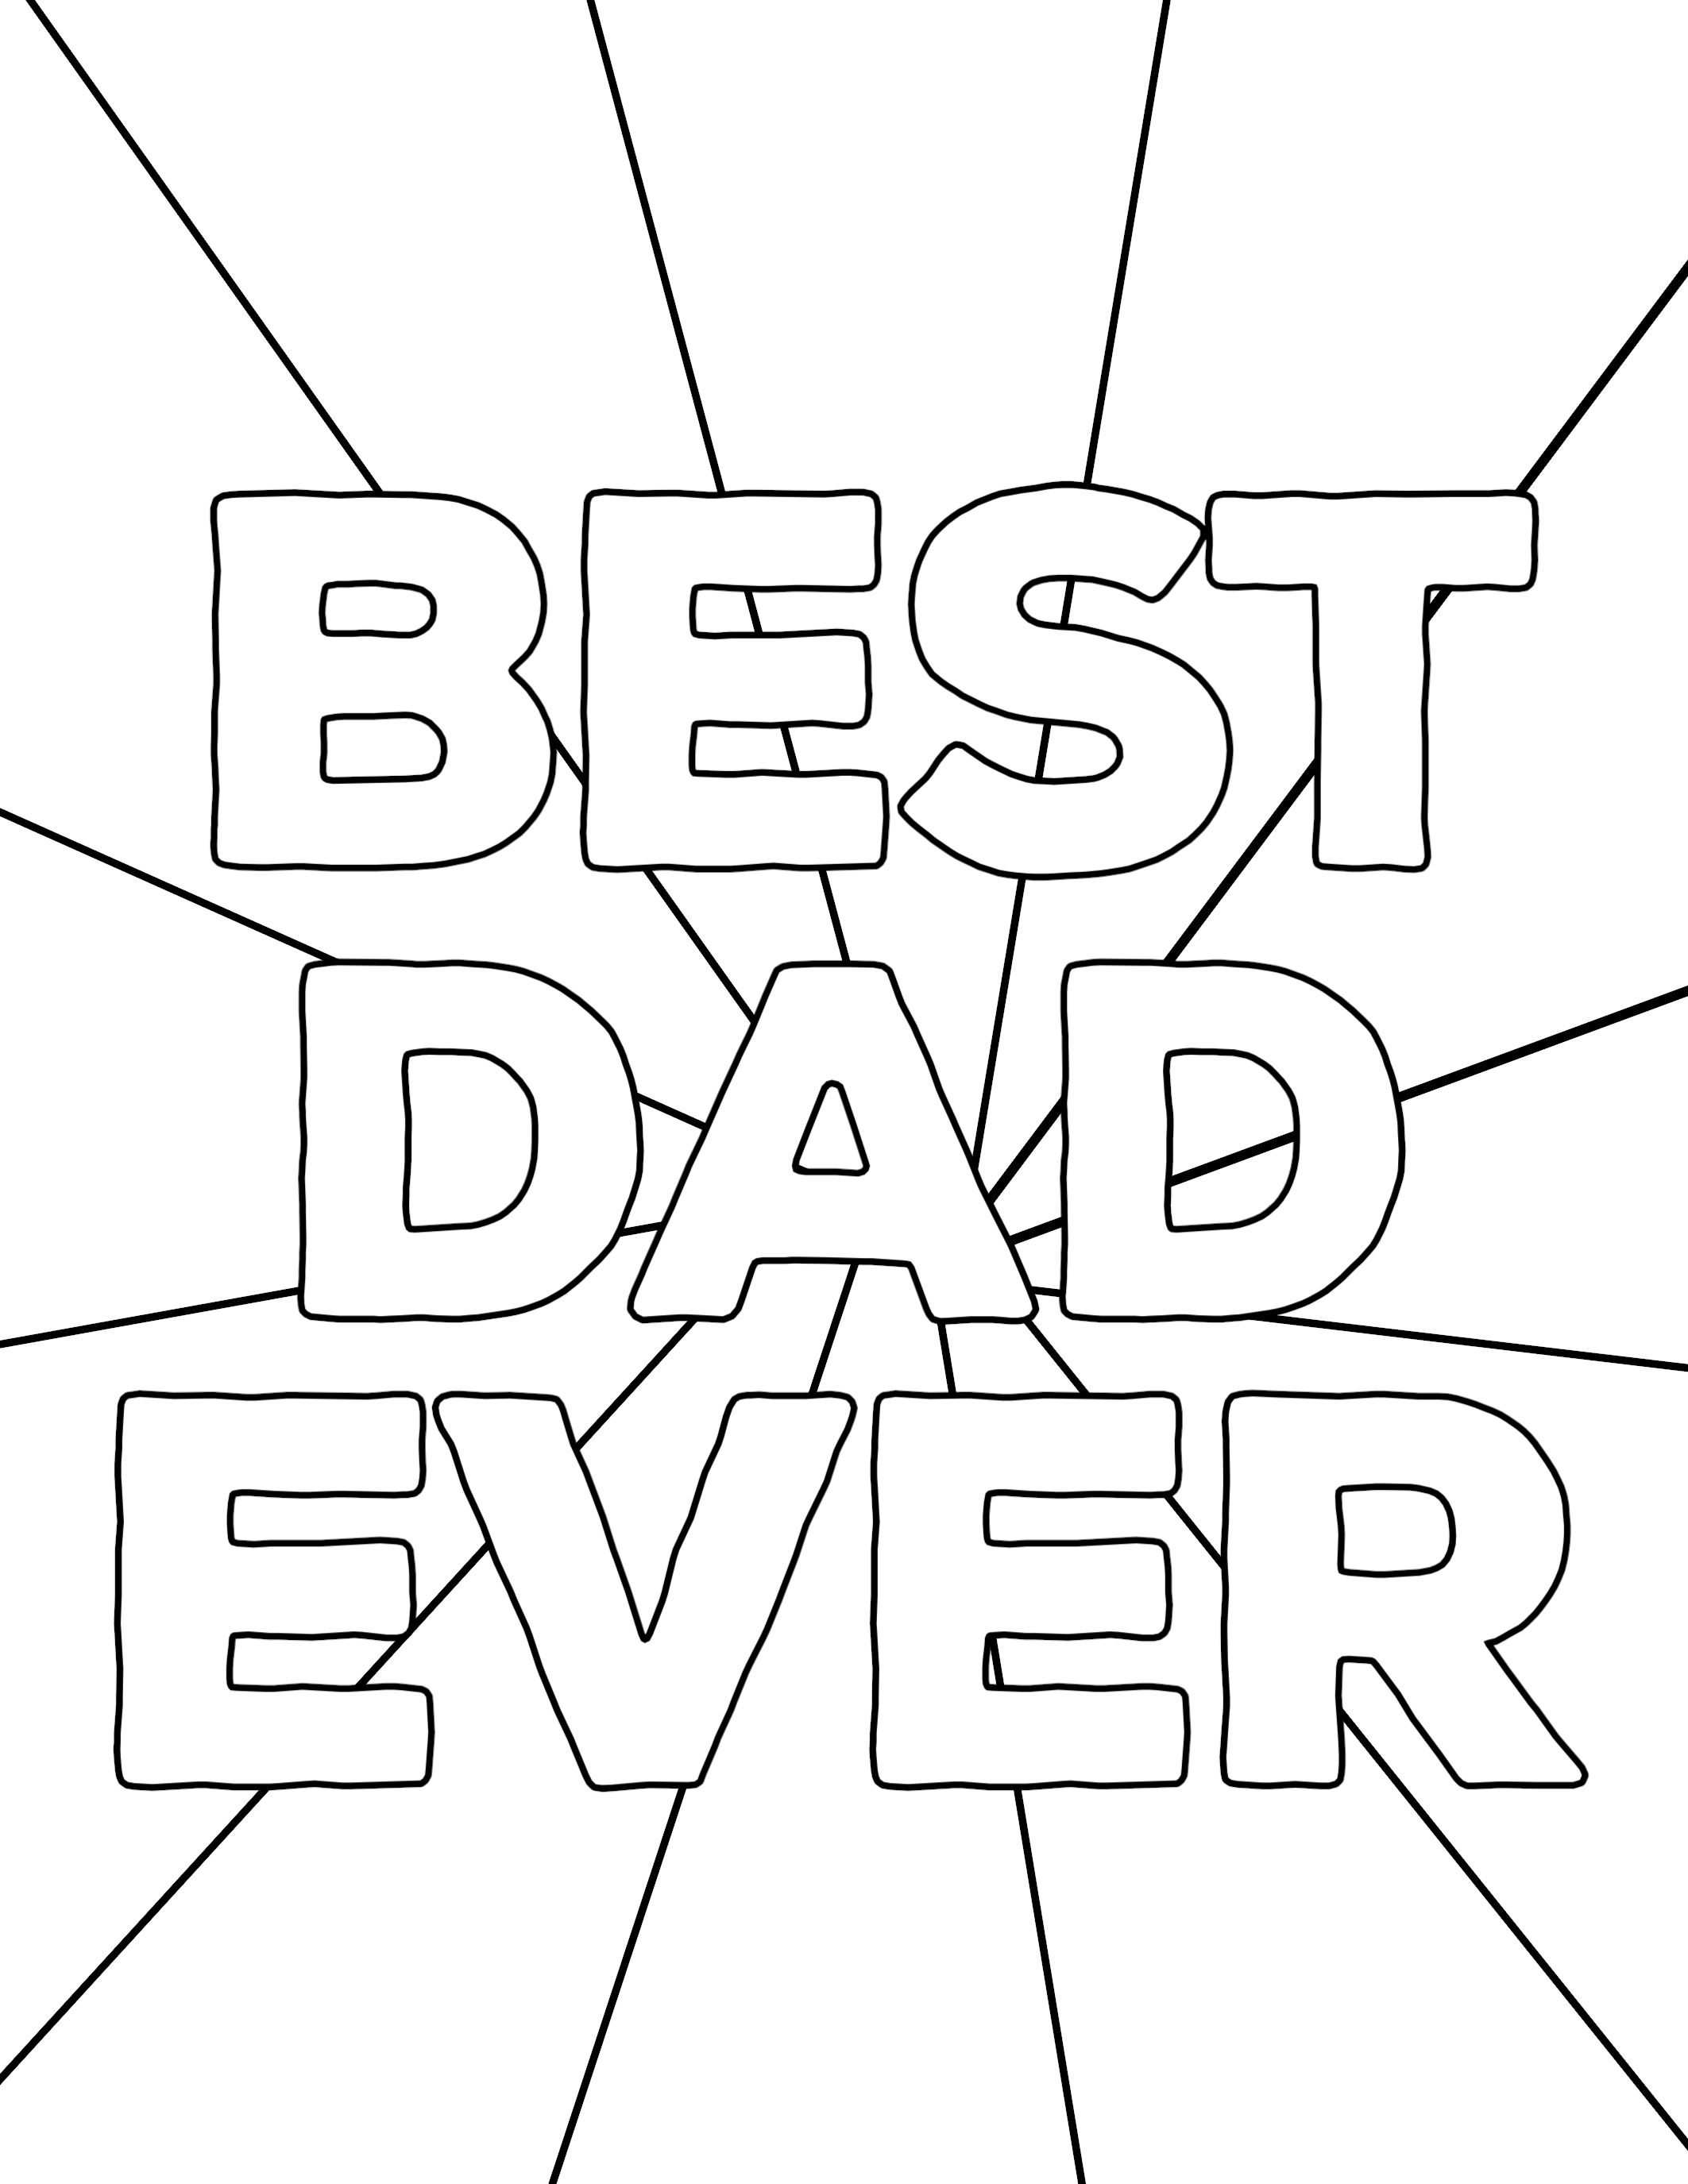 Happy Father S Day Coloring Pages Free Printables Paper Trail Design Fathers Day Coloring Page Mothers Day Coloring Pages Mothers Day Coloring Sheets